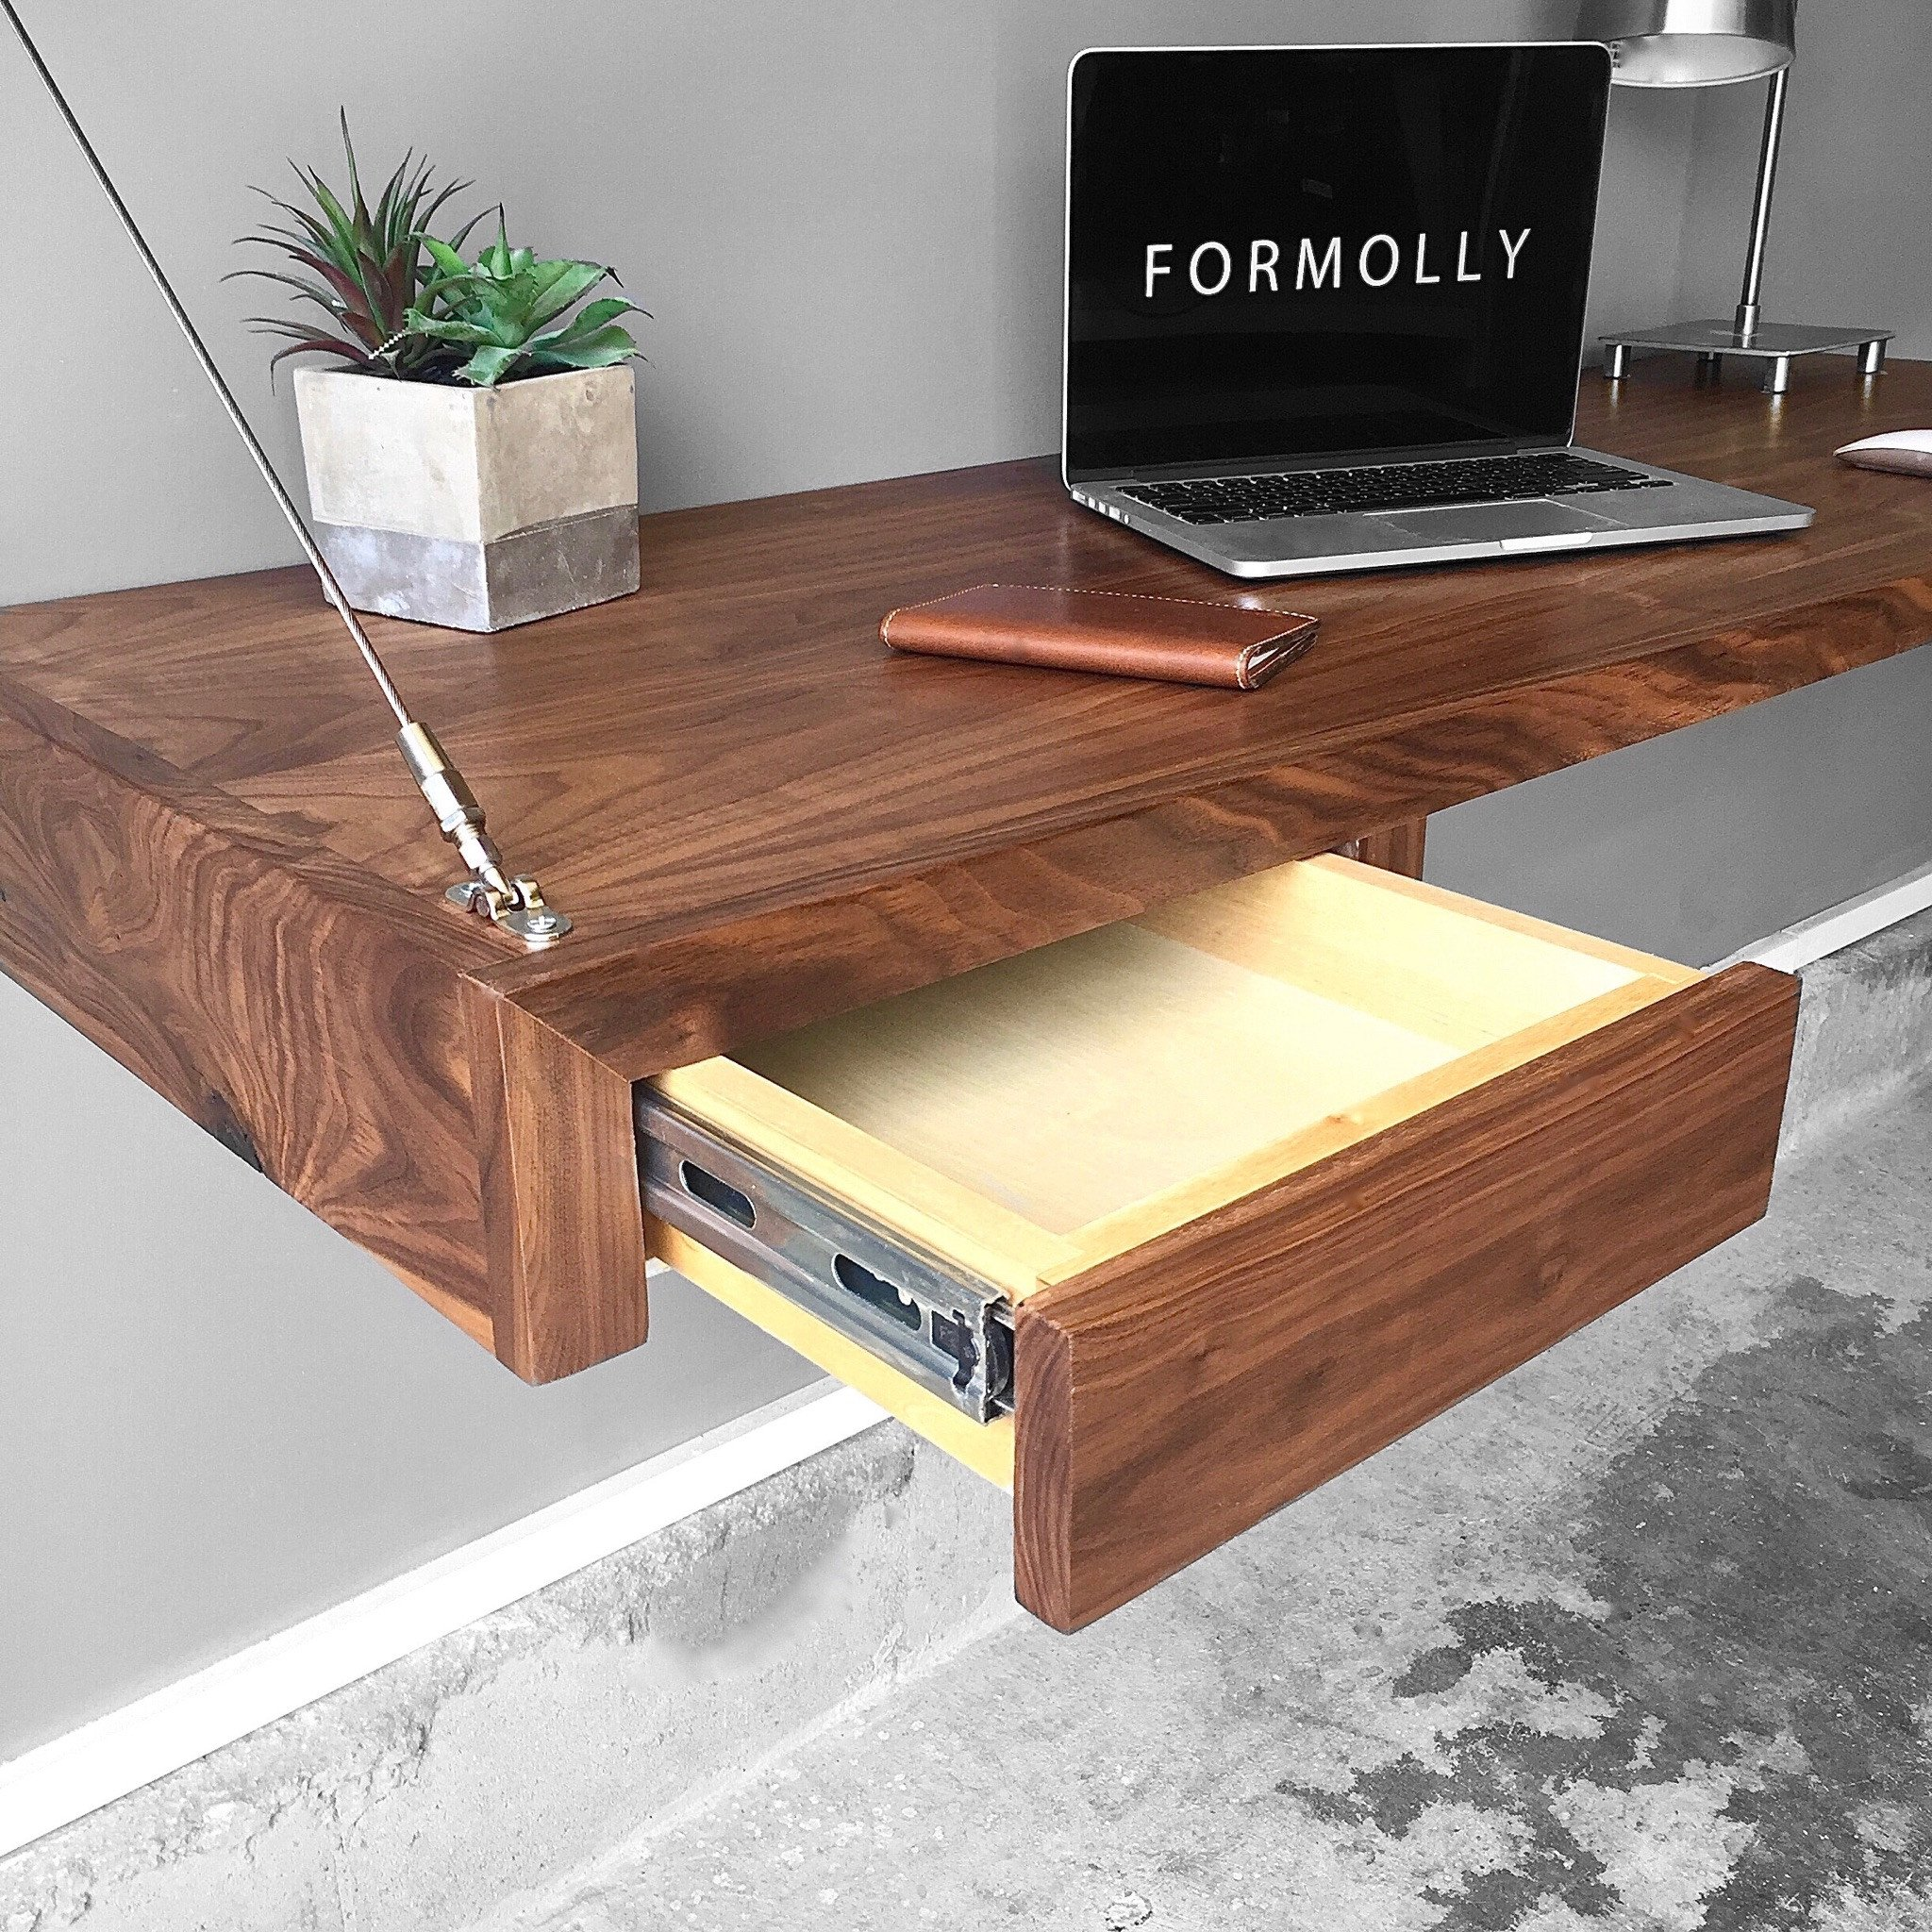 Maximize Your Workspace With The Walnut Floating Desk With Storage By Formolly Treat Yourself With A Space That In Floating Desk Attic Renovation Desk Storage